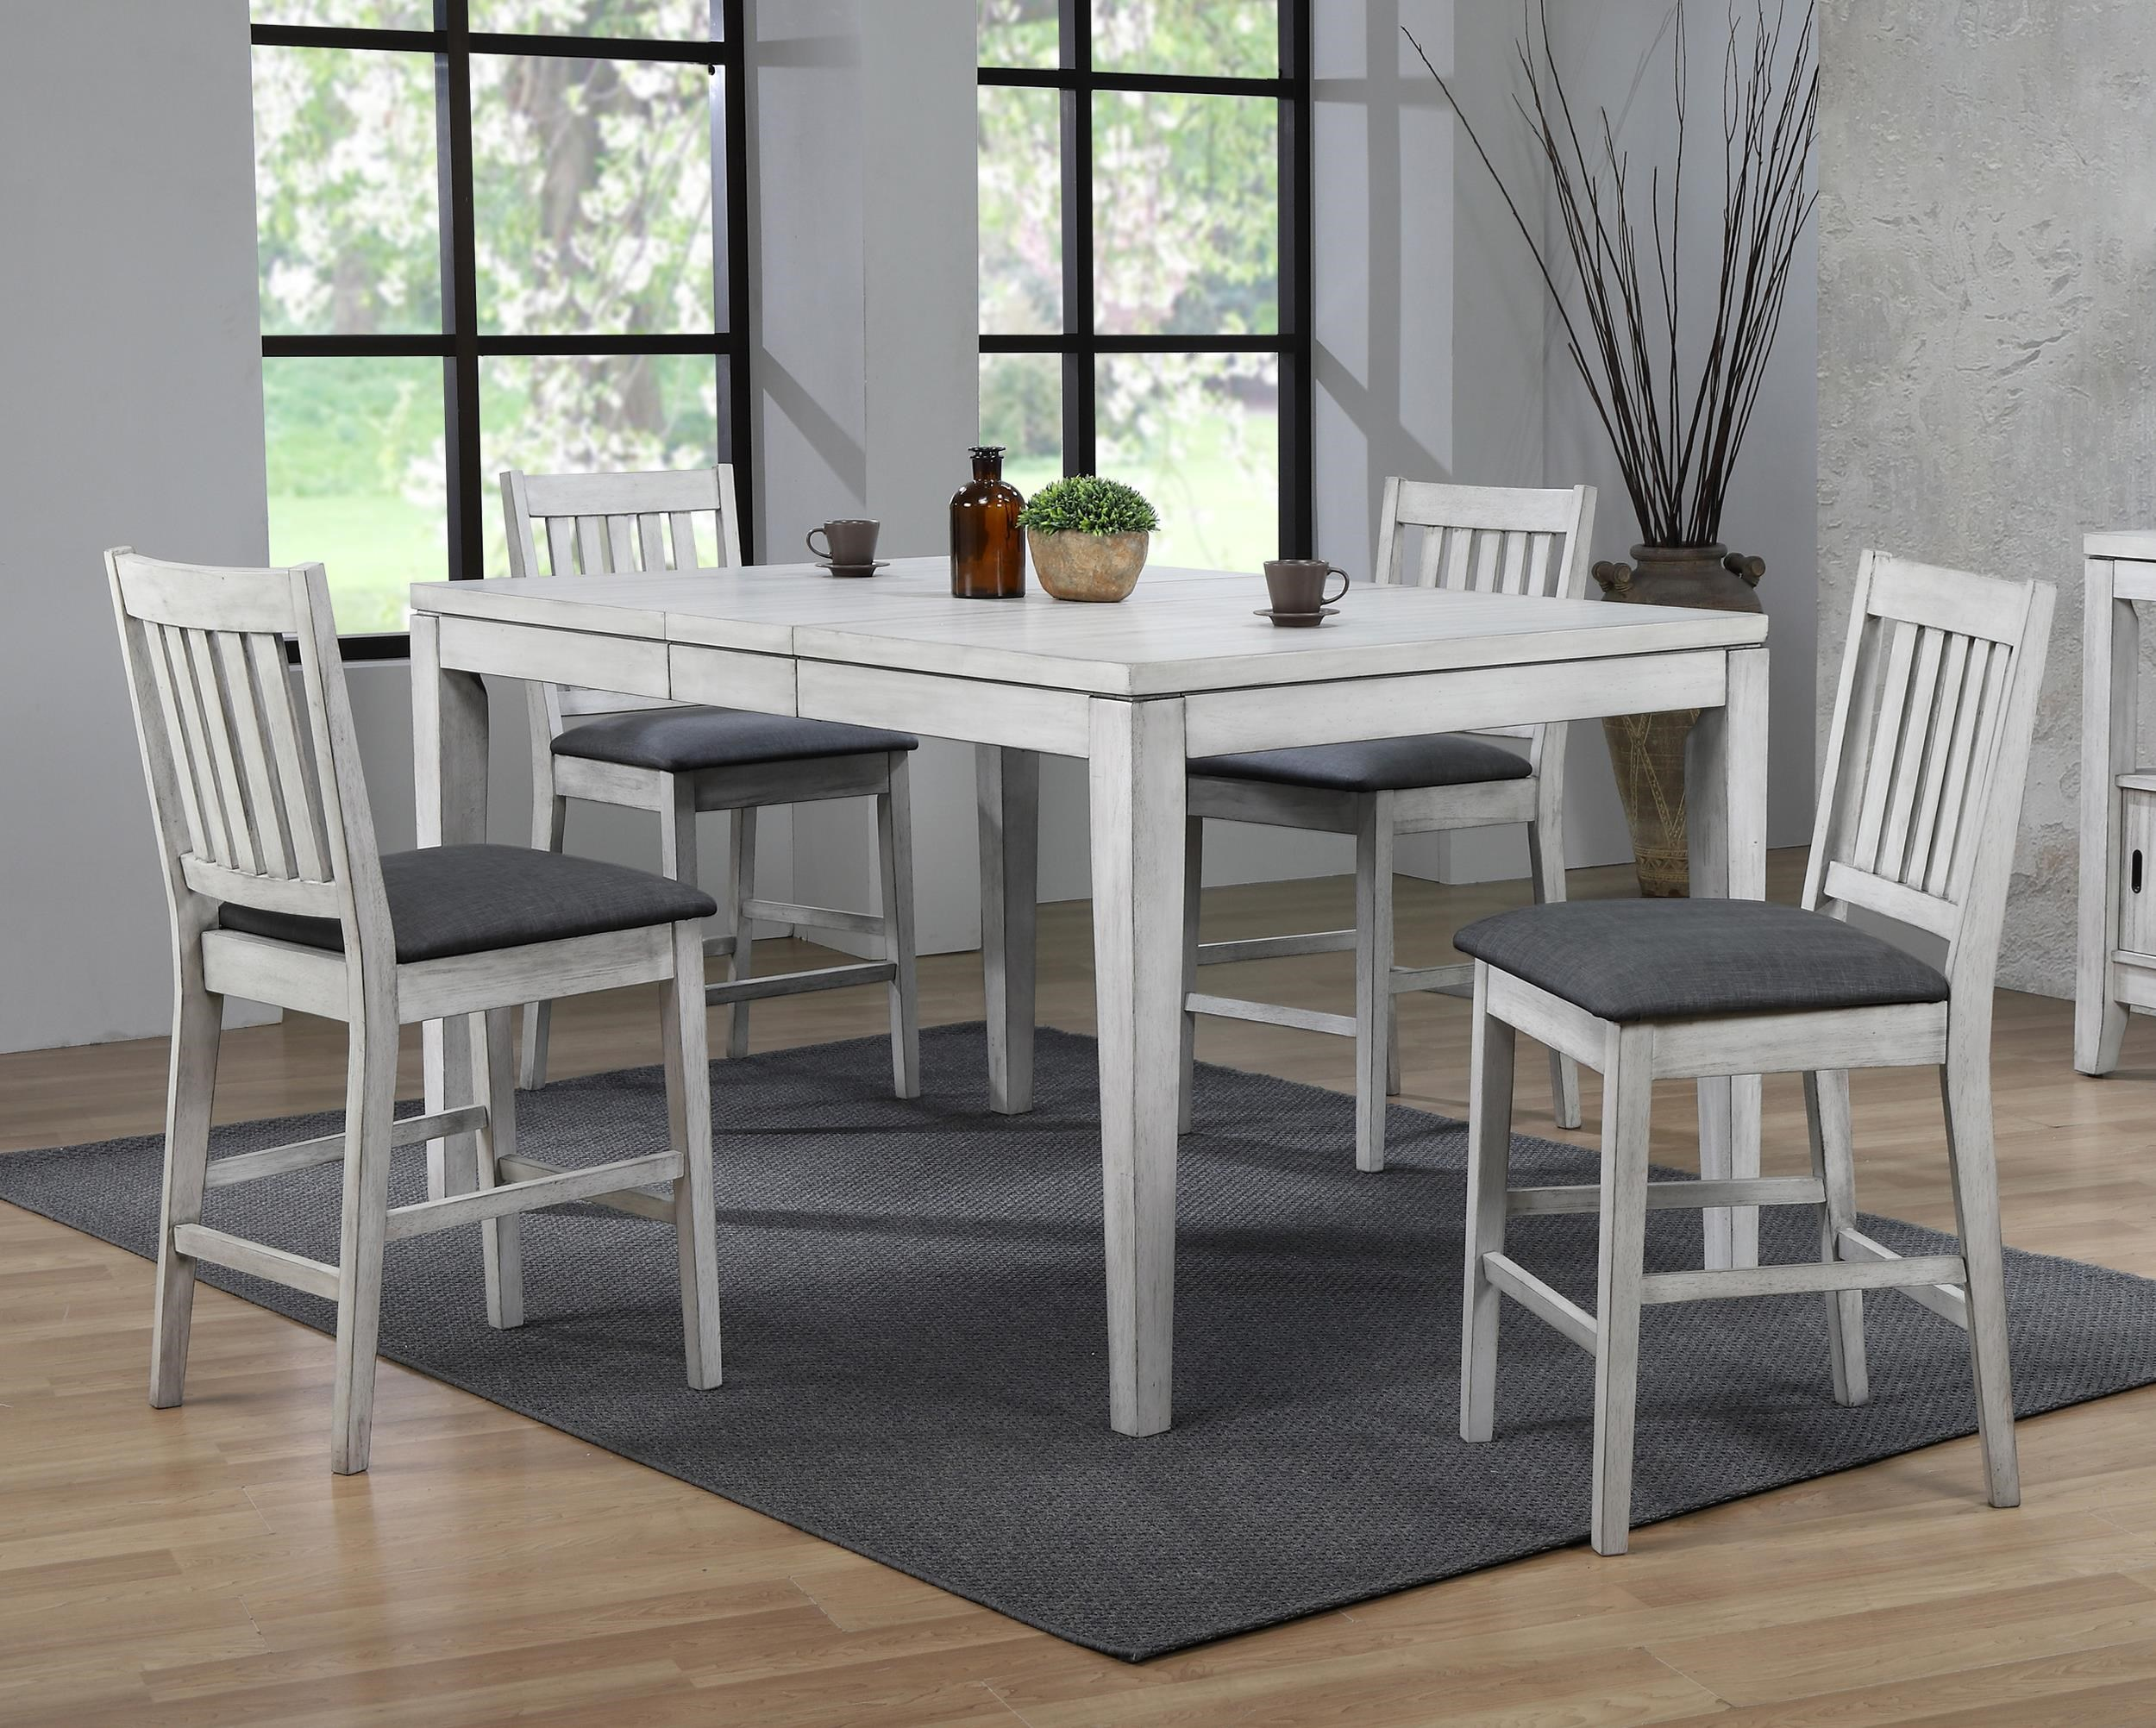 5 Piece Counter Height Dining Room